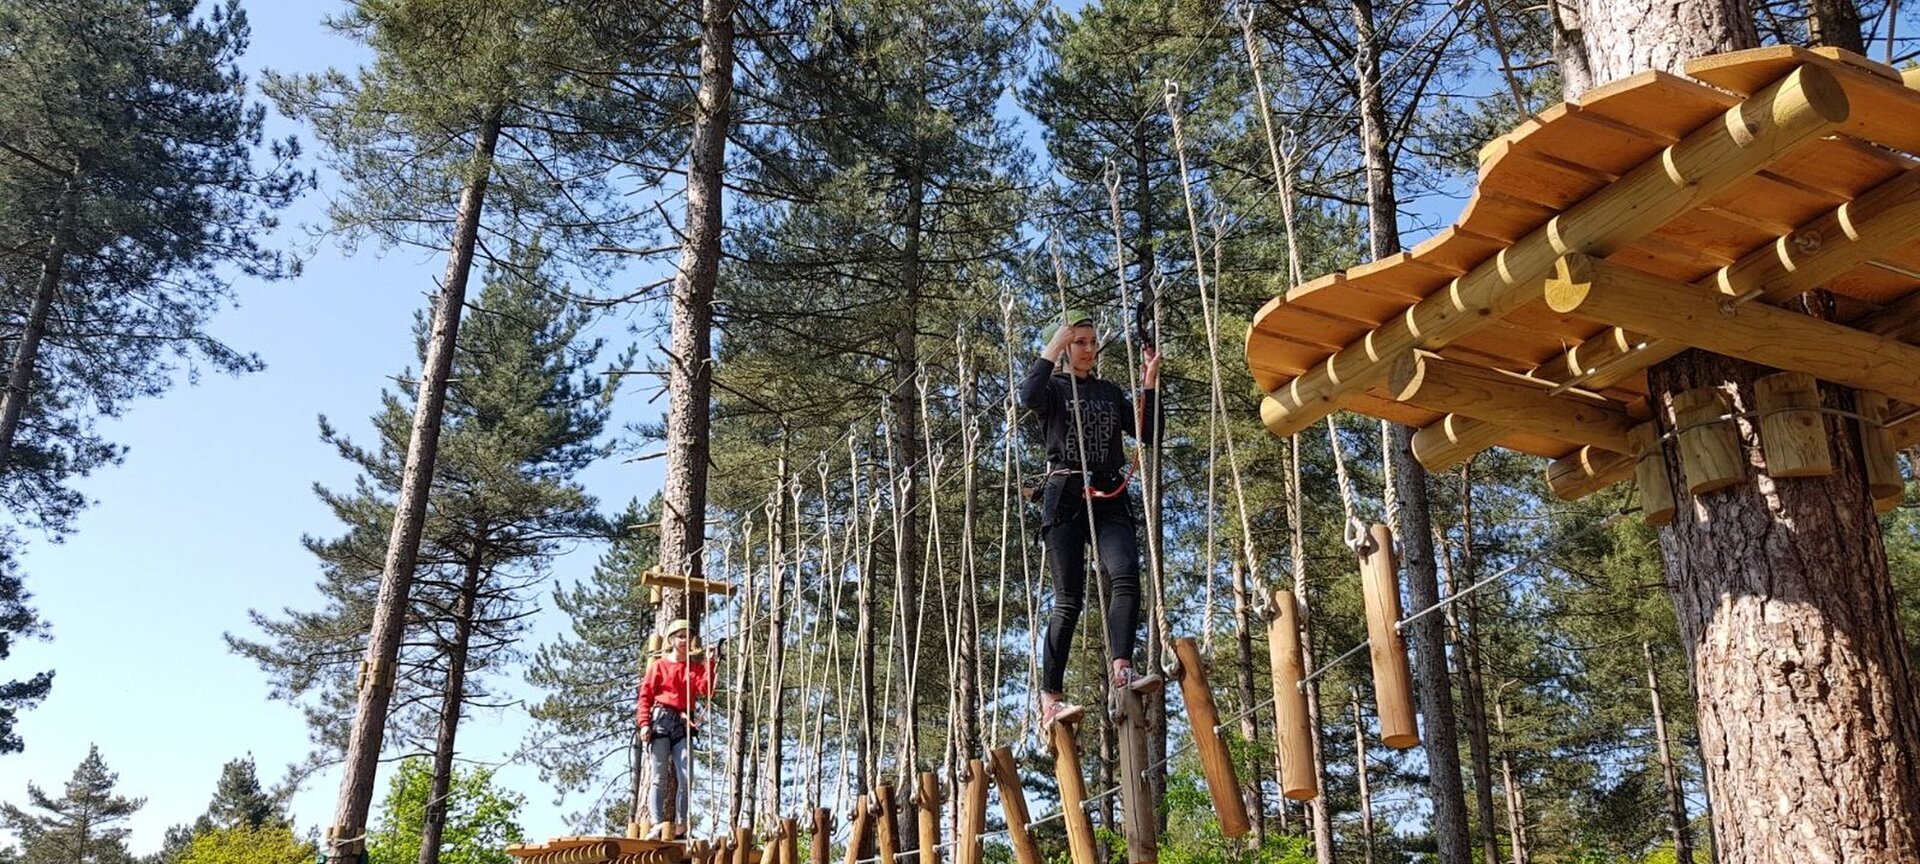 Adventure Park Het Warredal - Klimbos